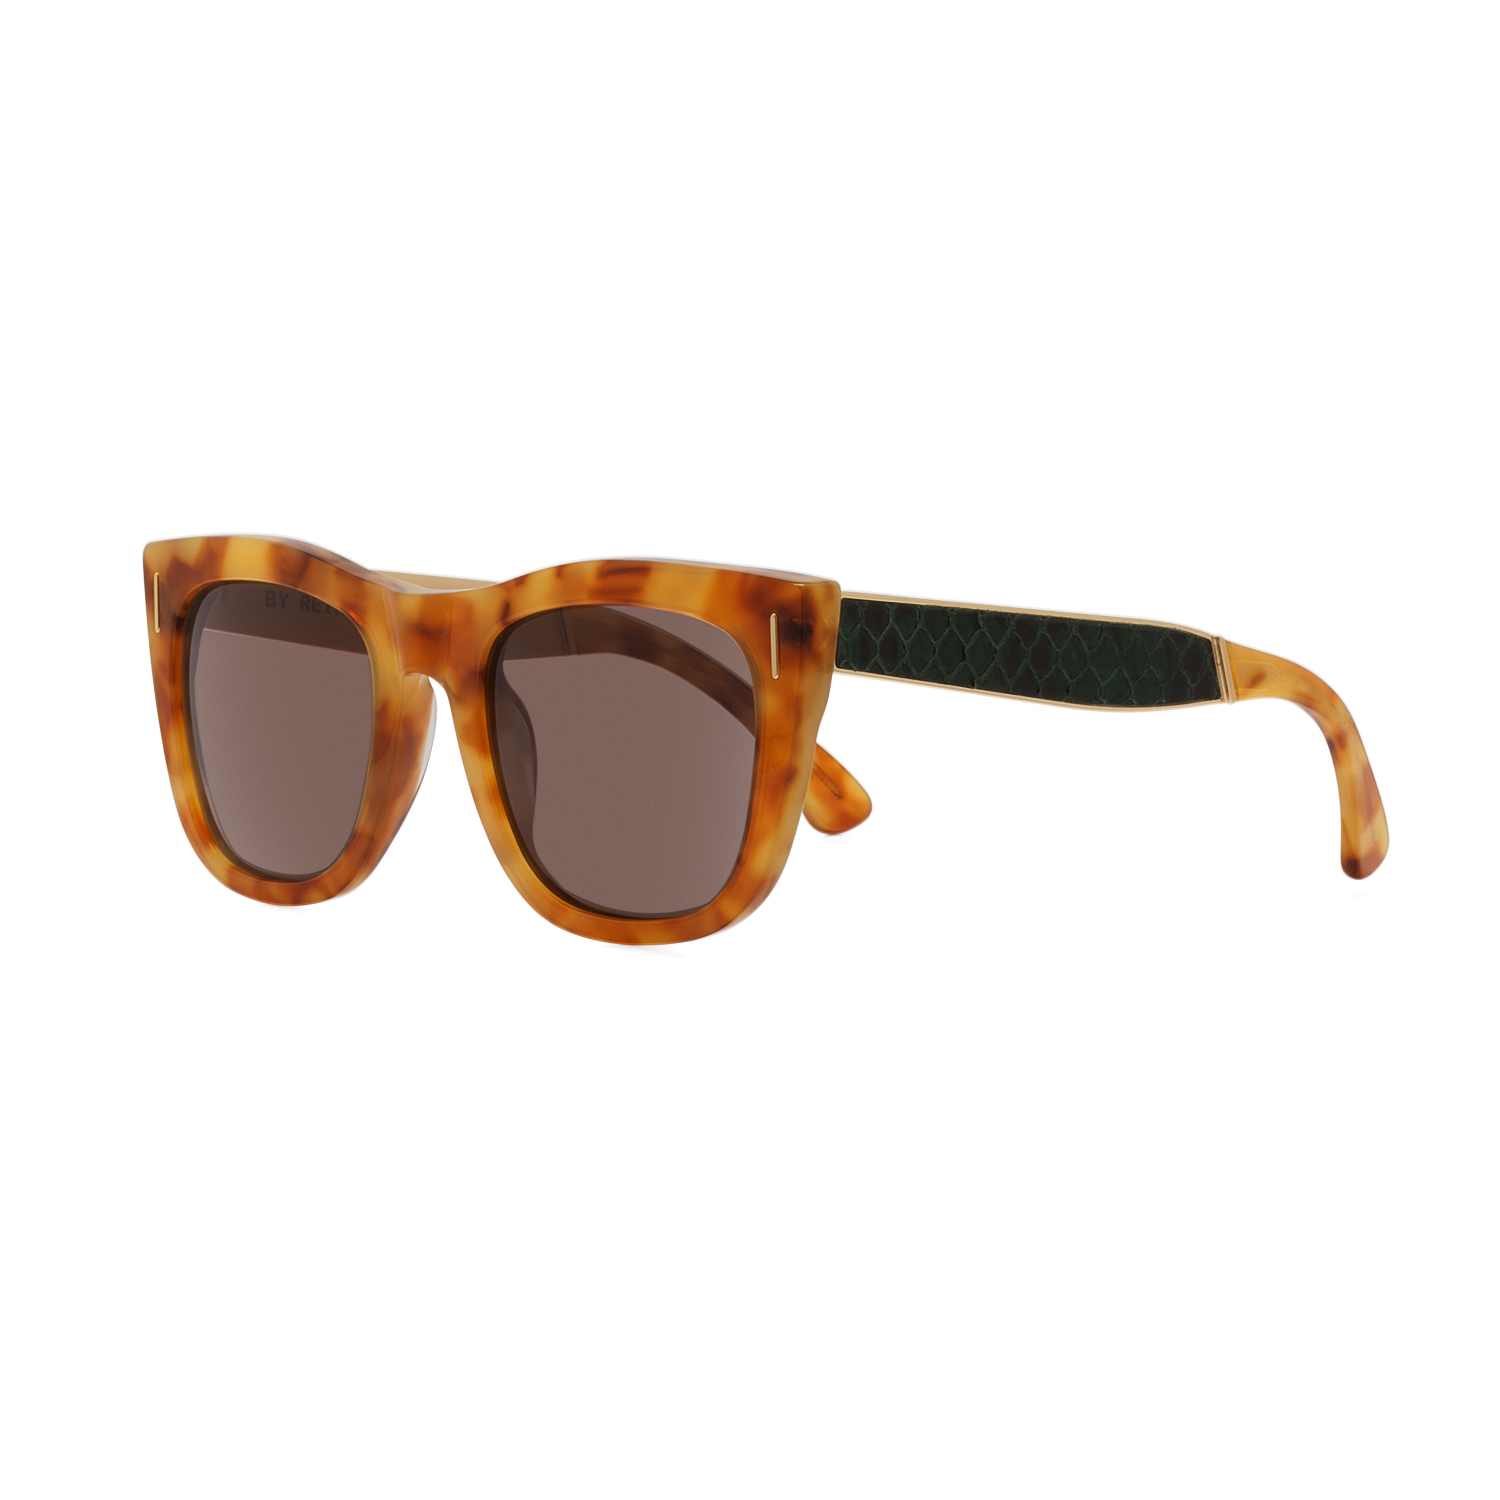 315ec2551d3 RETROSUPERFUTURE Super Gals Sinner Sunglasses SU7JL Brown Green Snake Skin  Frame